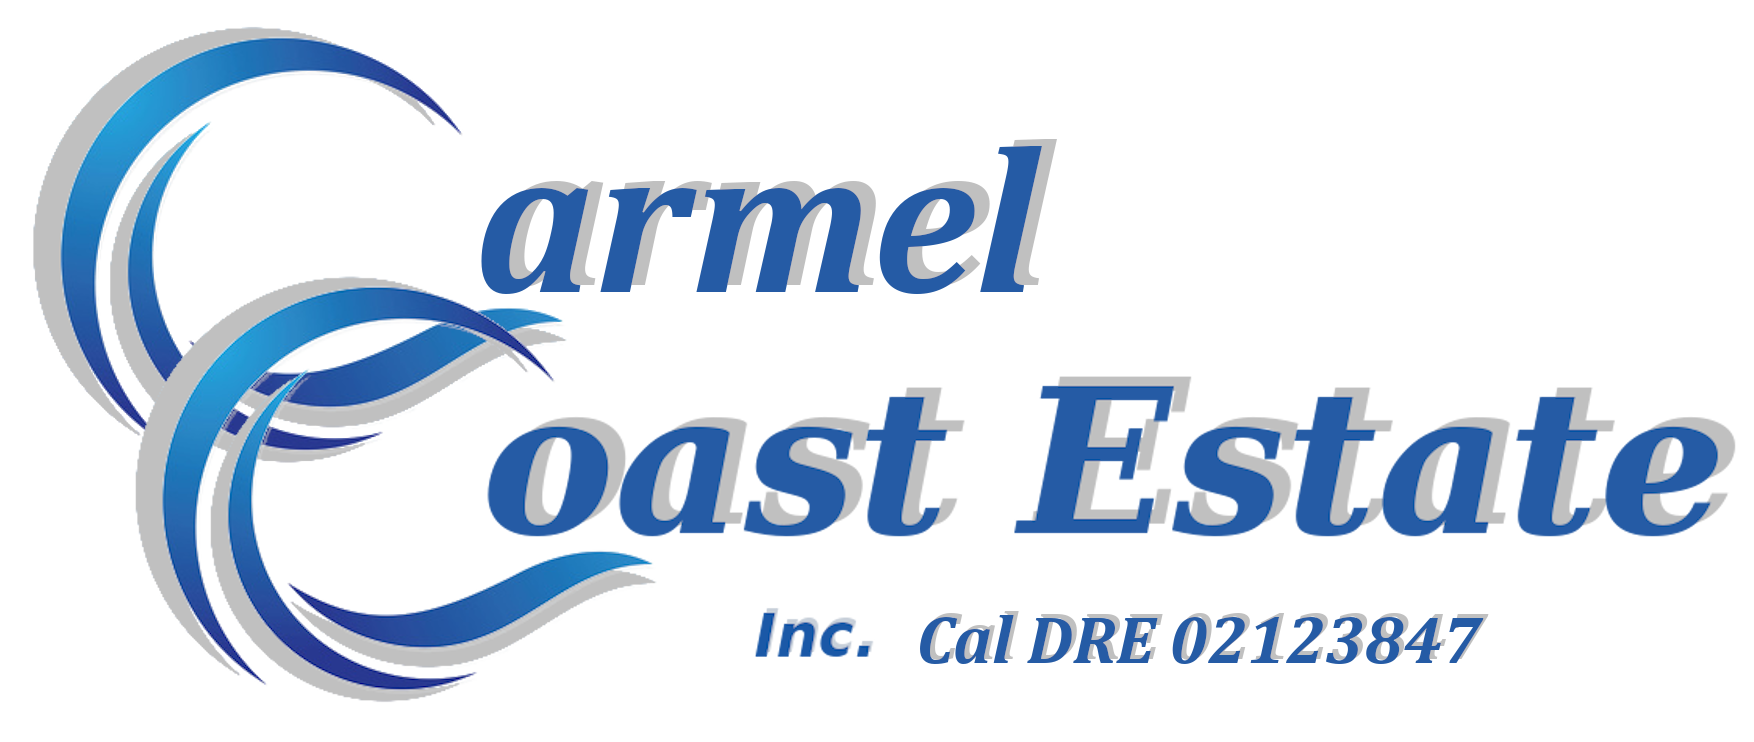 Coast Estate Real Estate Property Management, Inc.: Carmel, Monterey, Pacific Grove & Pebble Beach